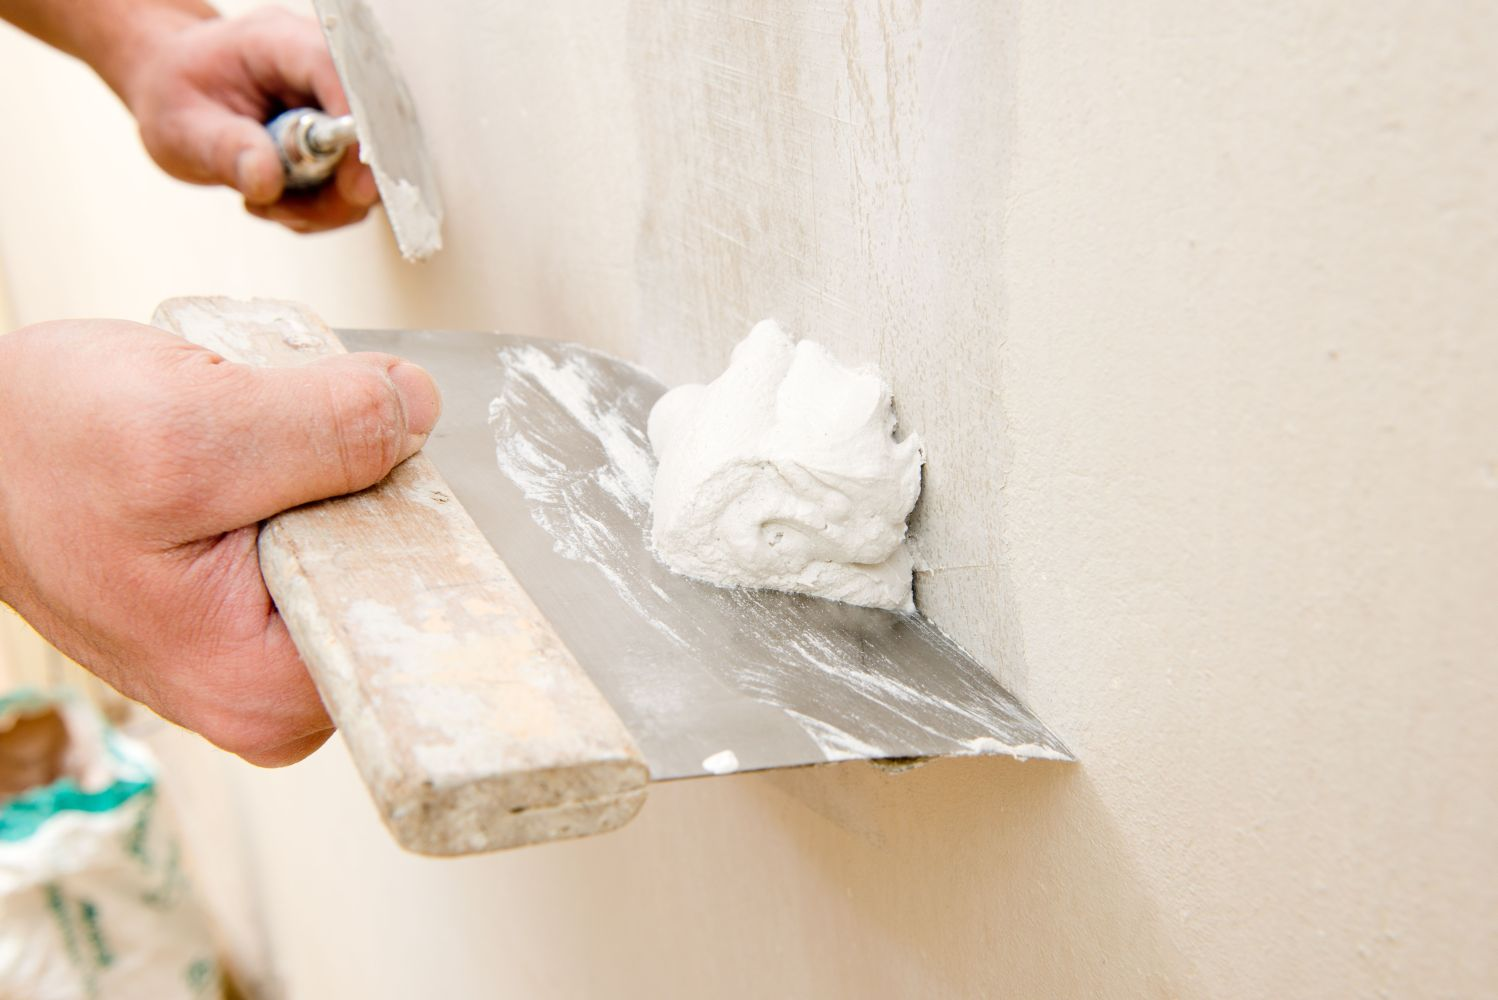 How To Fix Uneven Or Damaged Drywall With A Skim Coat